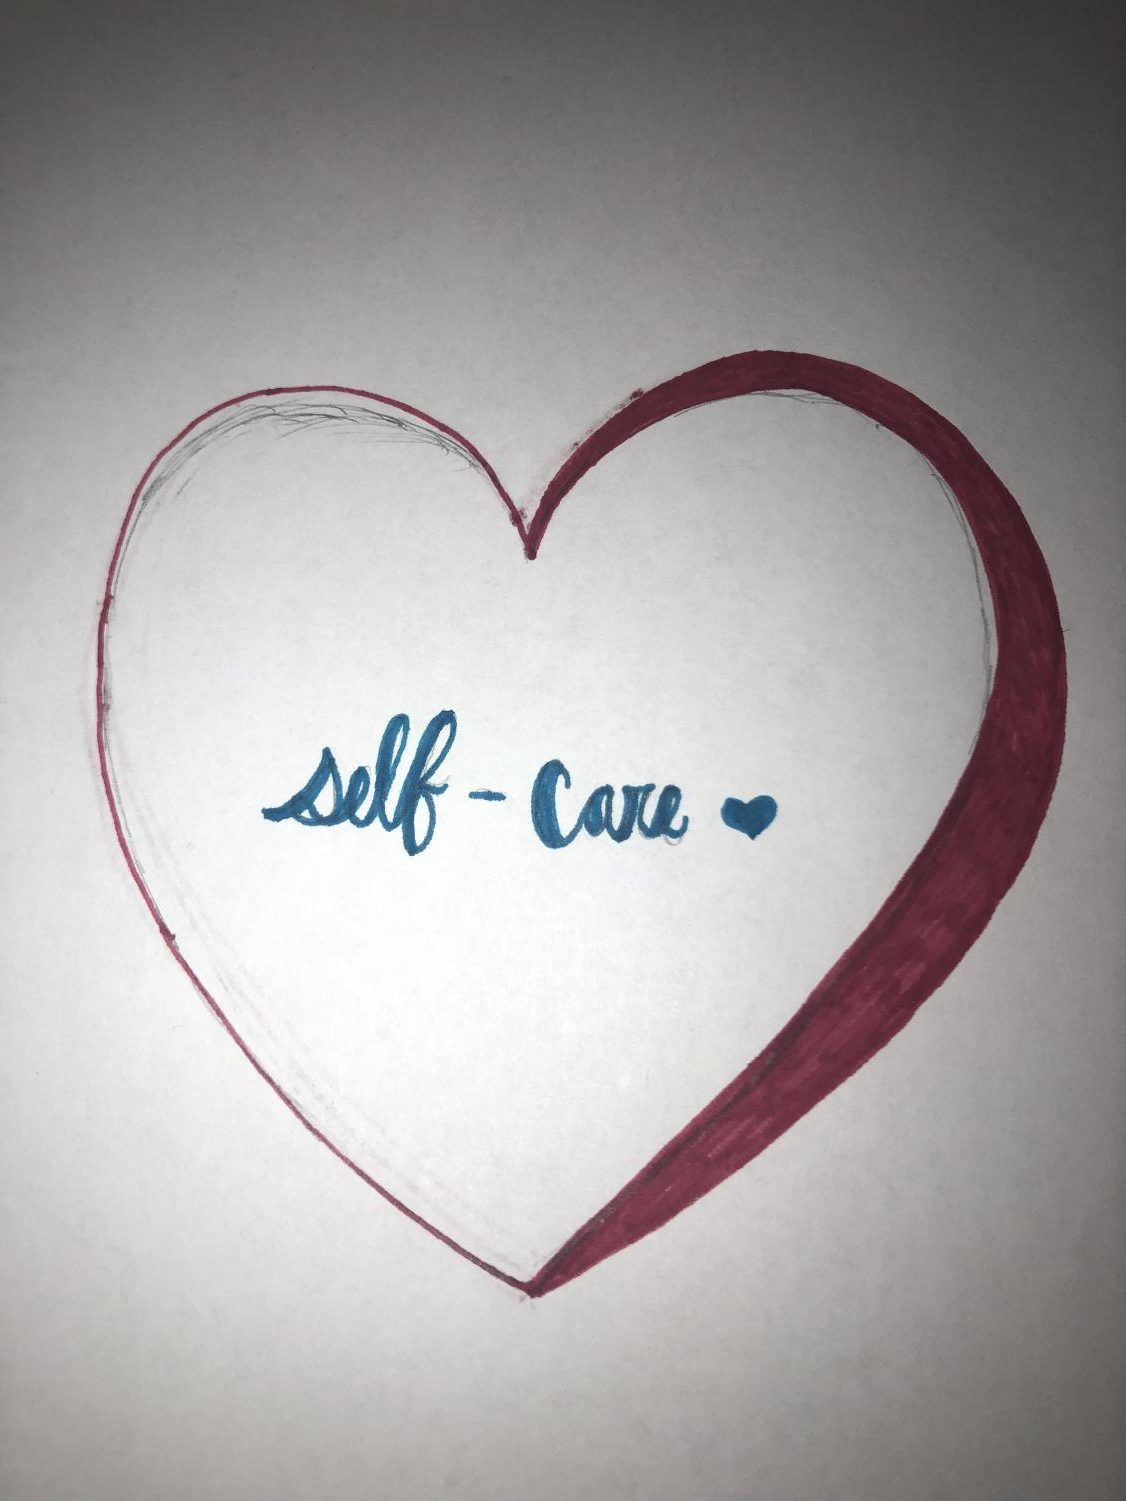 Self-care is the necessary care and love for yourself. Everyone deserves to be loved by themselves.